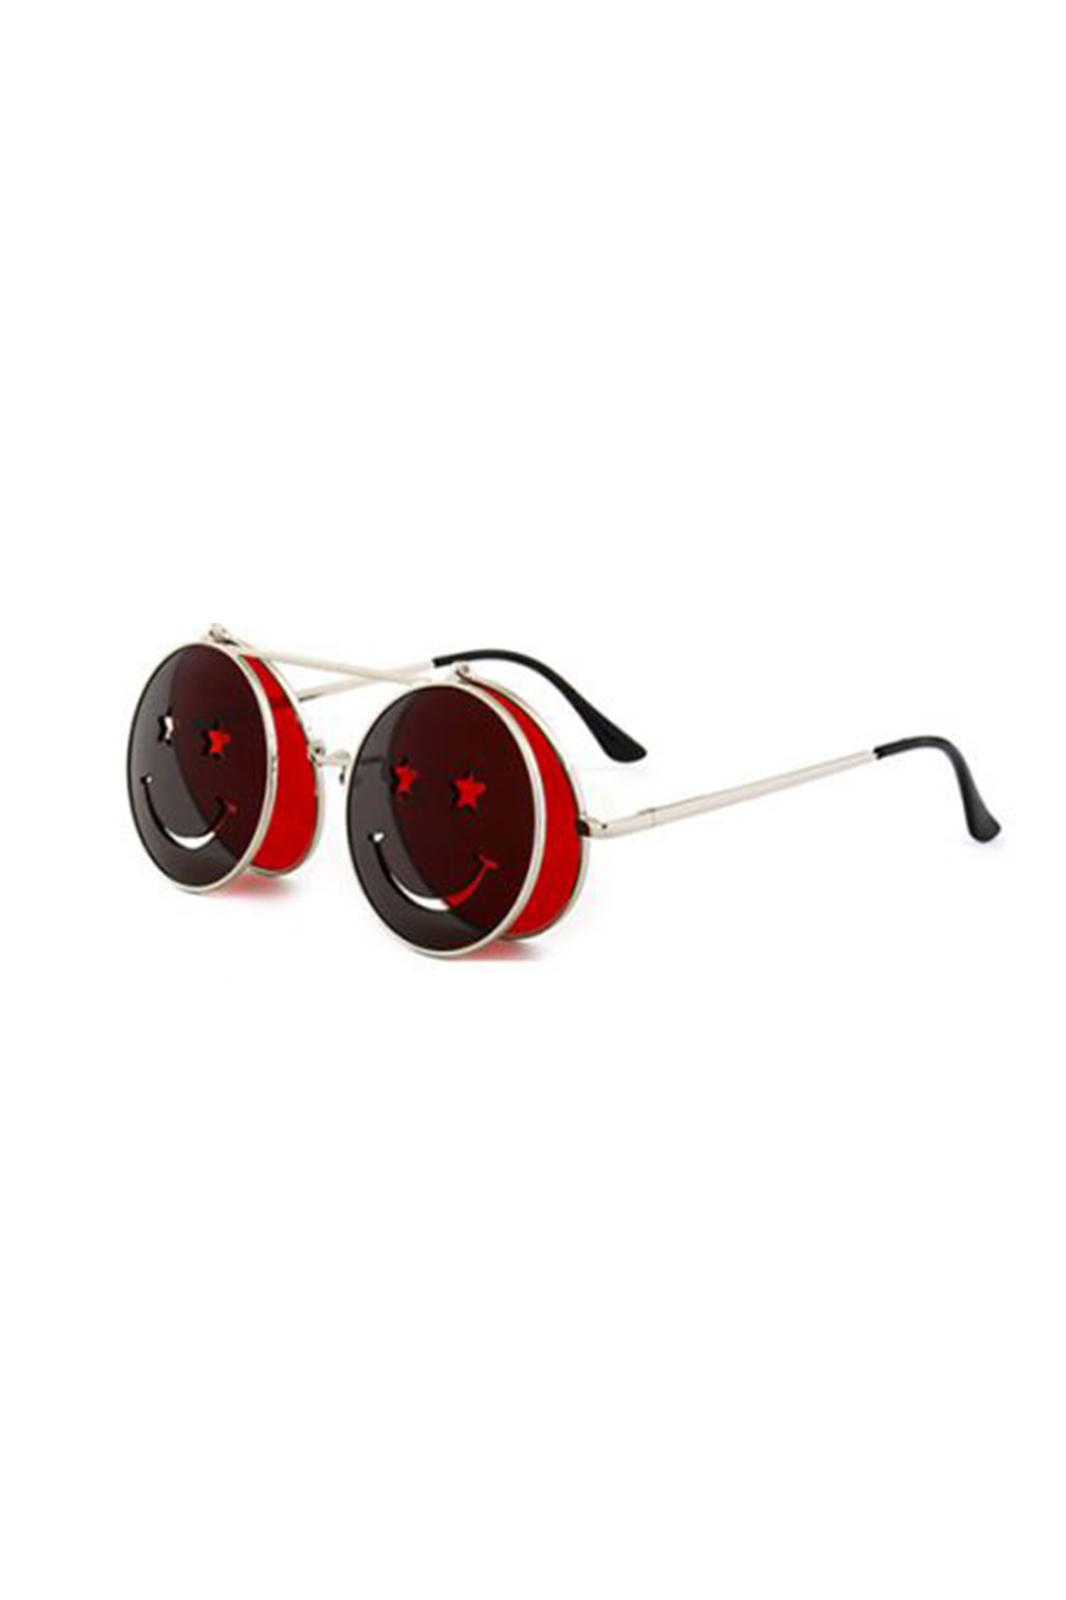 Sunglasses Smiley Face Flip Up Red